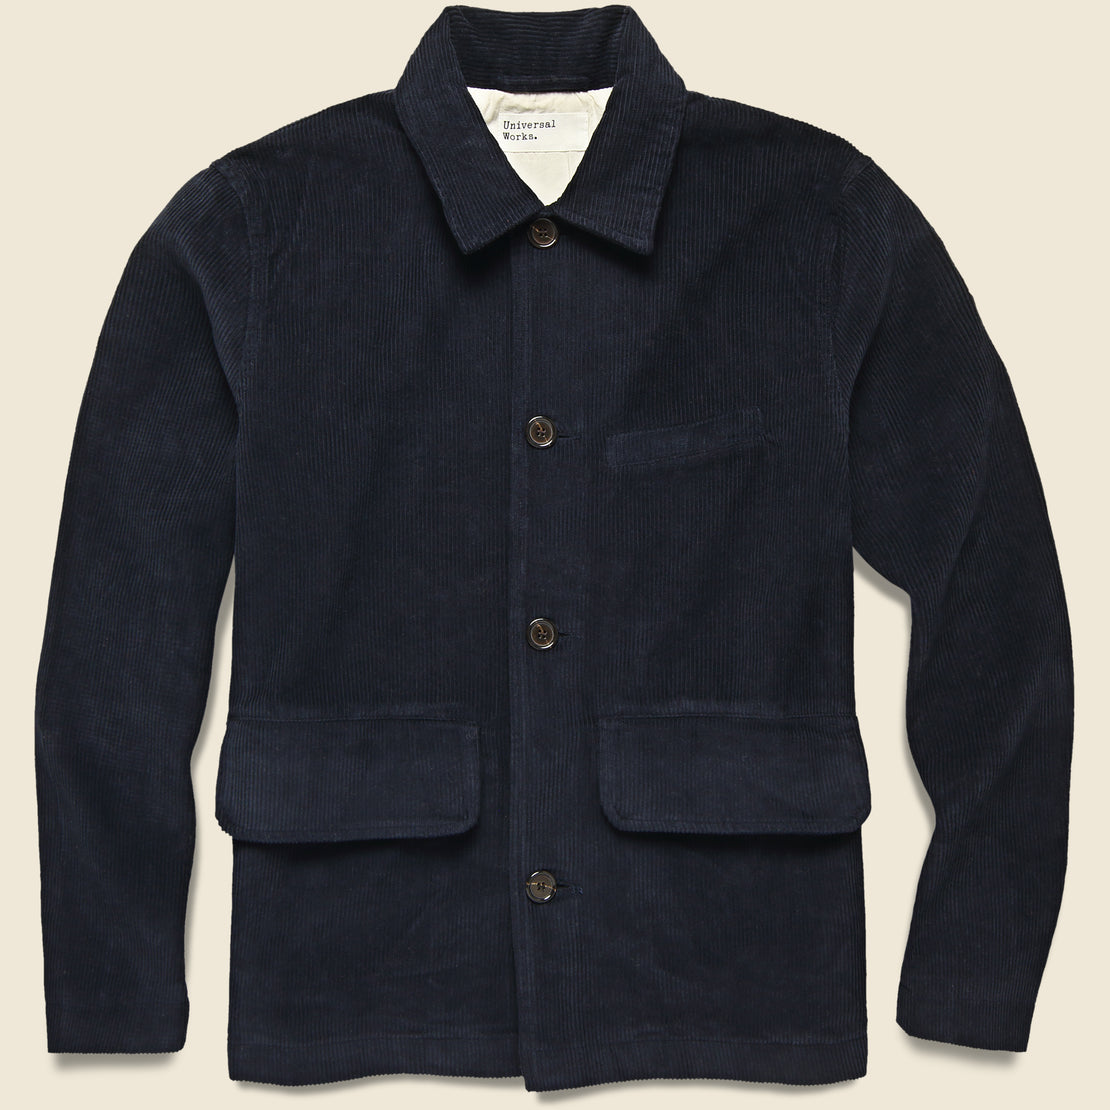 Universal Works Warmus II Jacket - Navy Cord